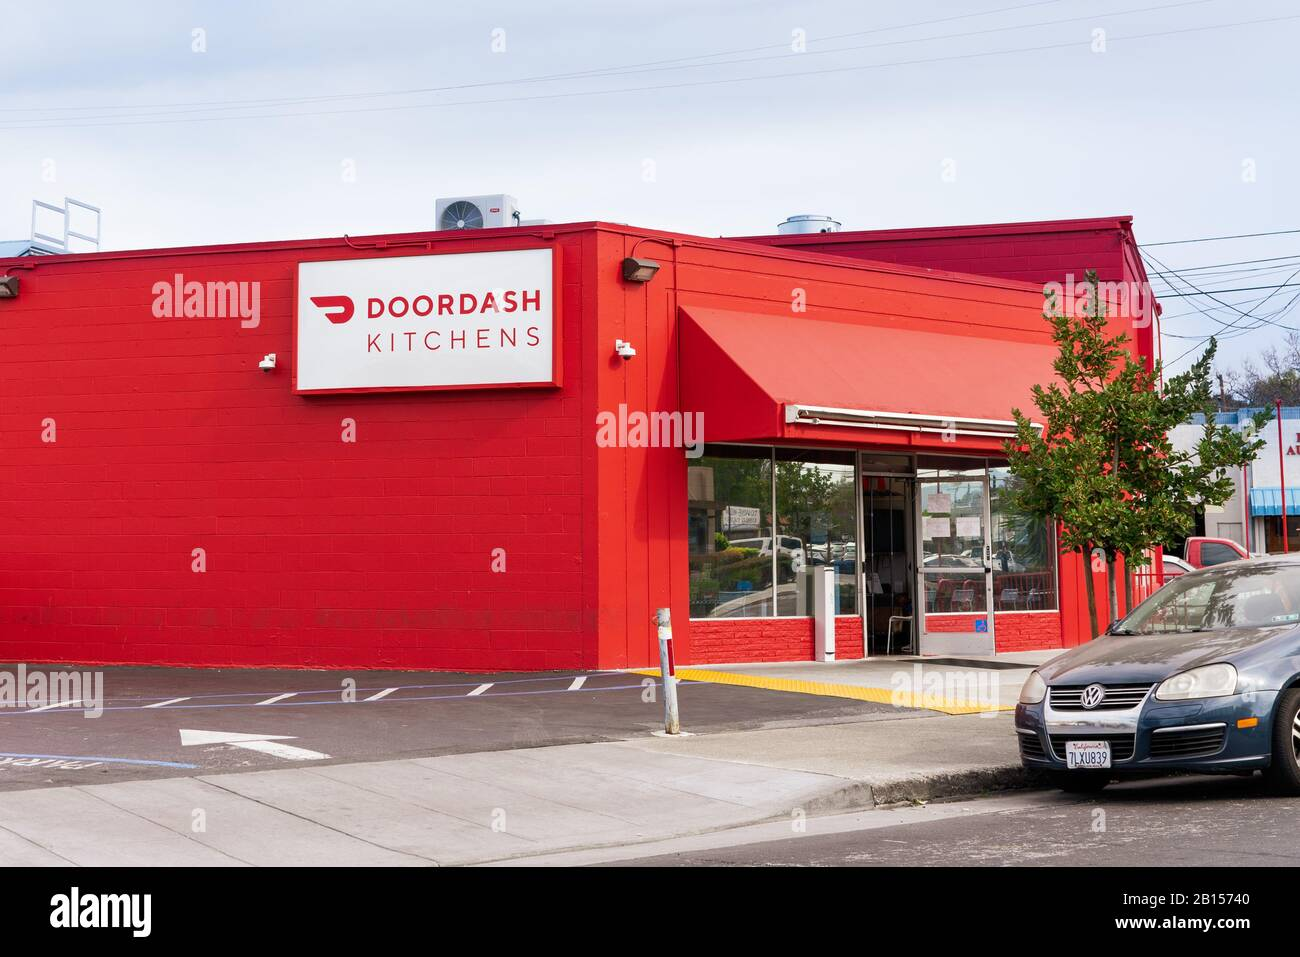 Feb 21, 2020 Redwood City / CA / USA - DoorDash Kitchens location; DoorDash Kitchens follows the ghost-kitchen model by providing shared space to rest Stock Photo